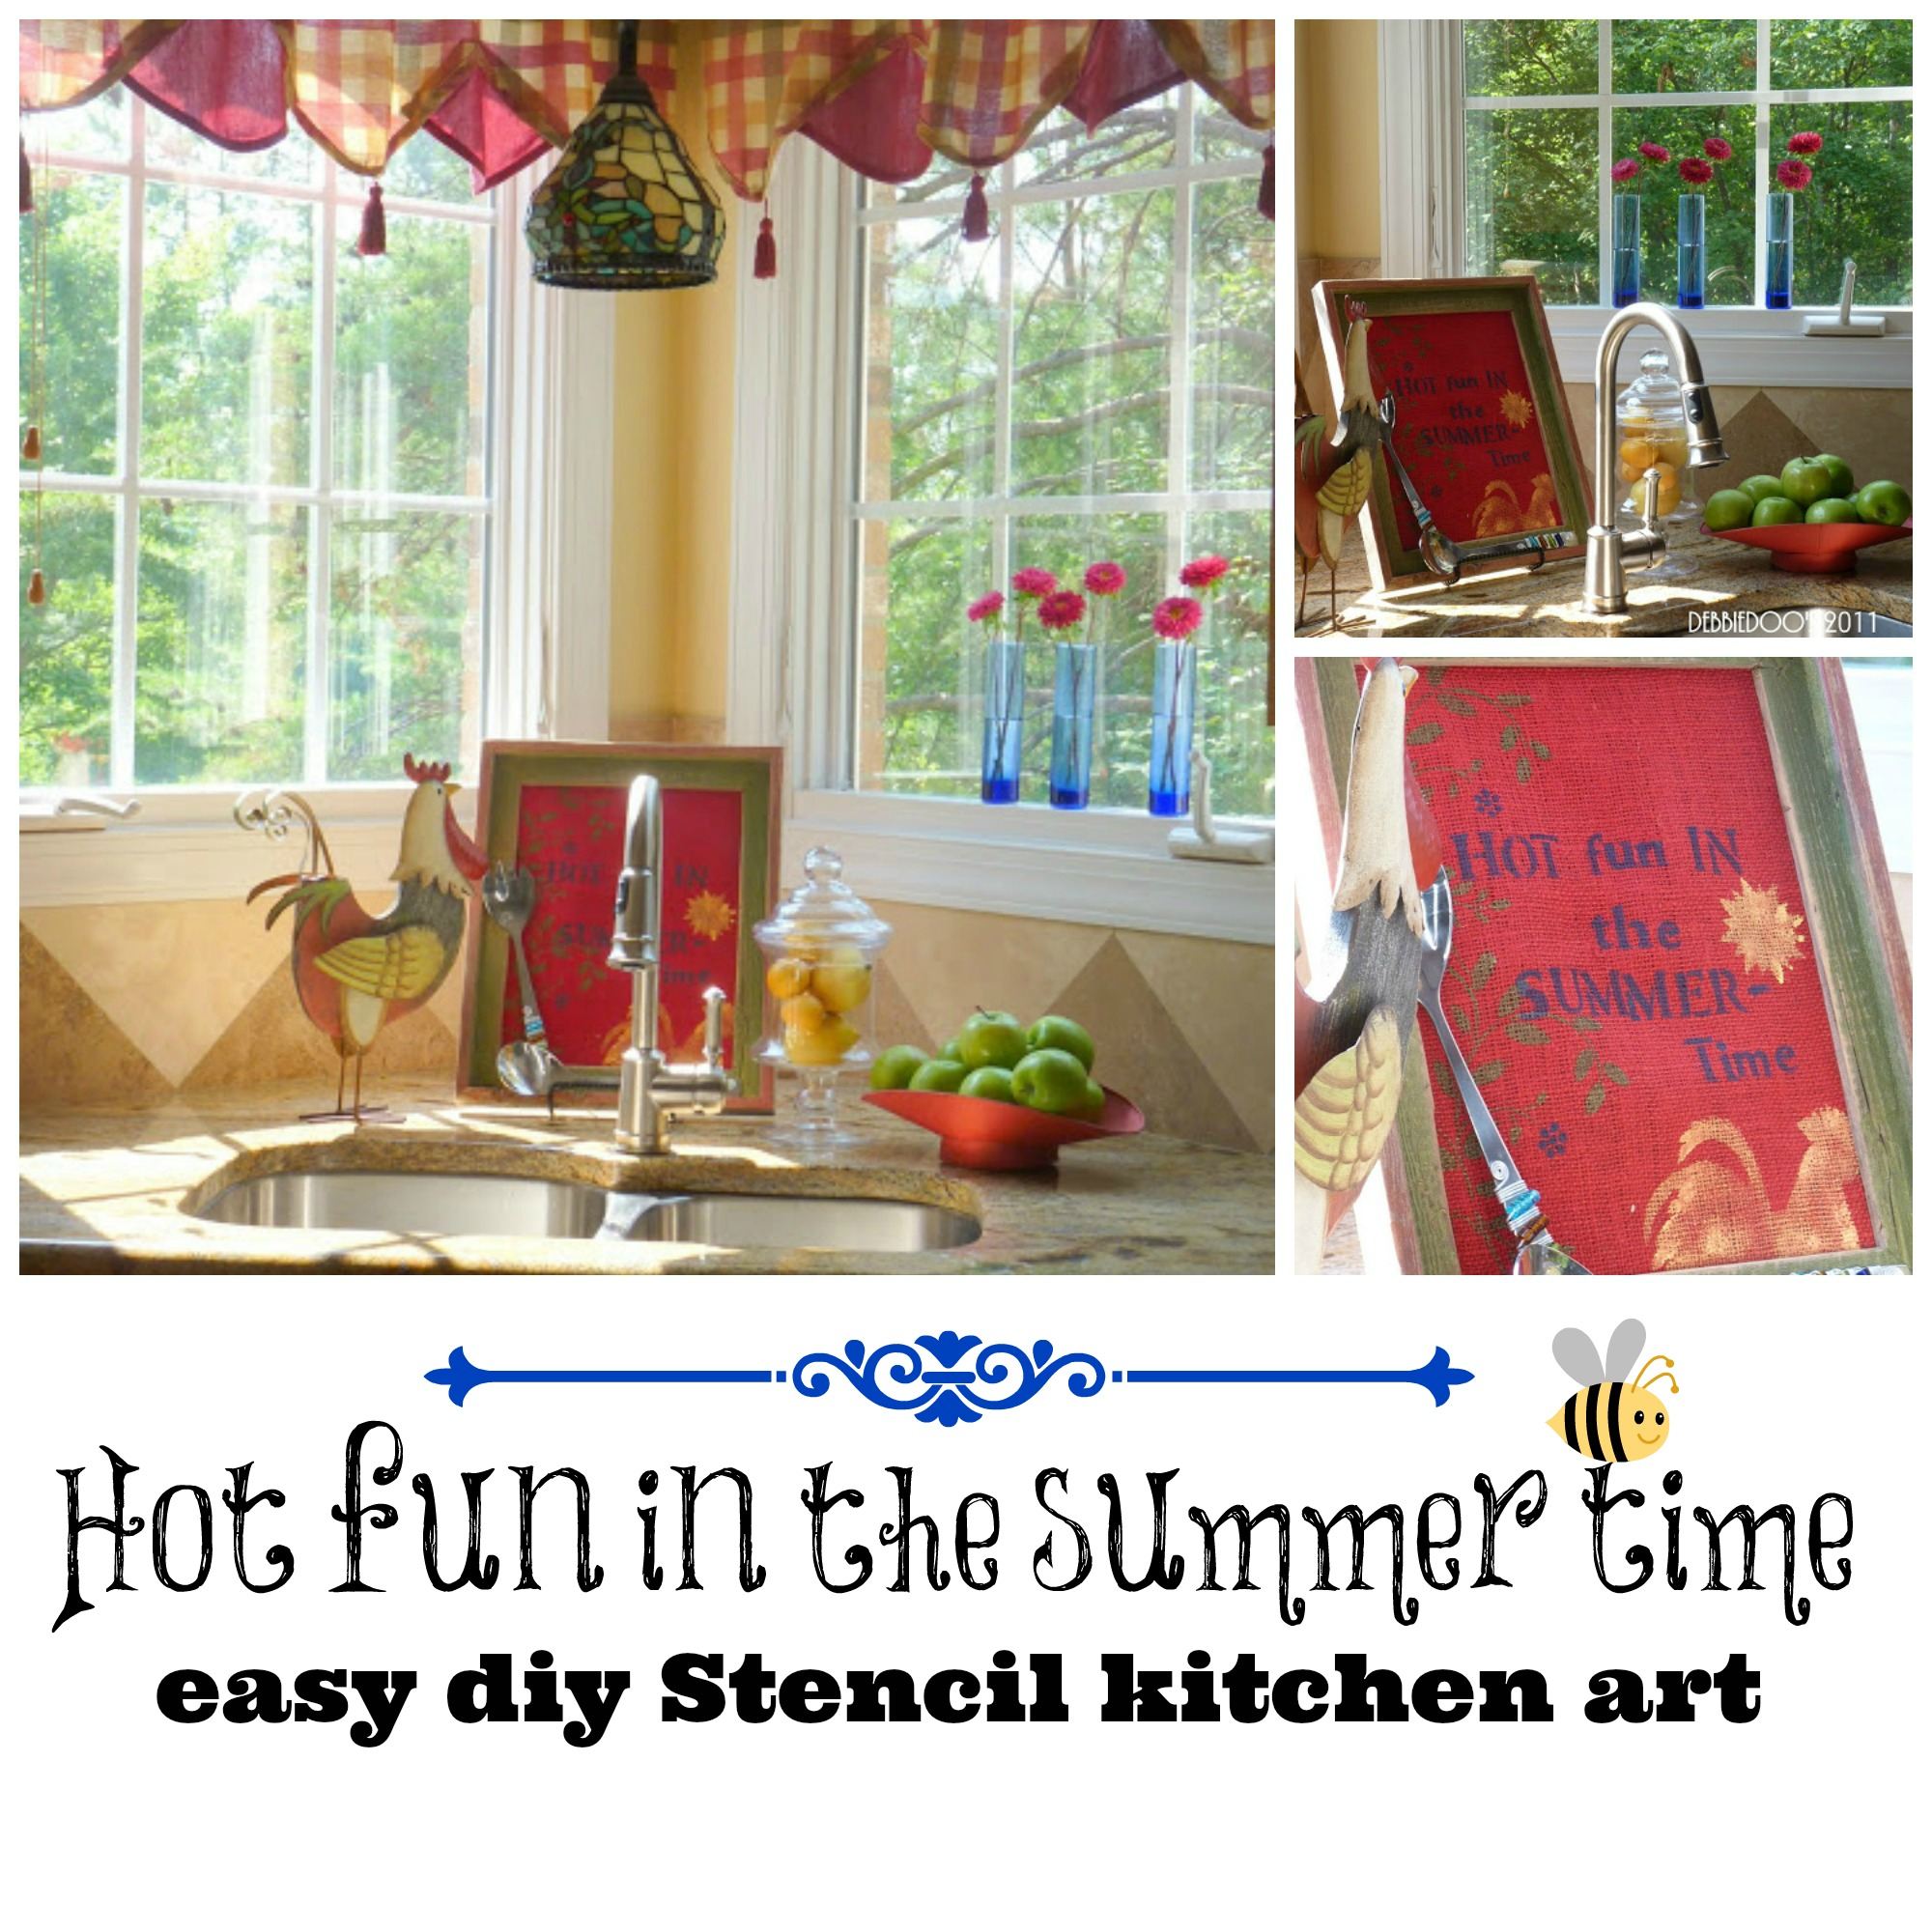 Hot fun in the summer time, easy diy kitchen art (1)